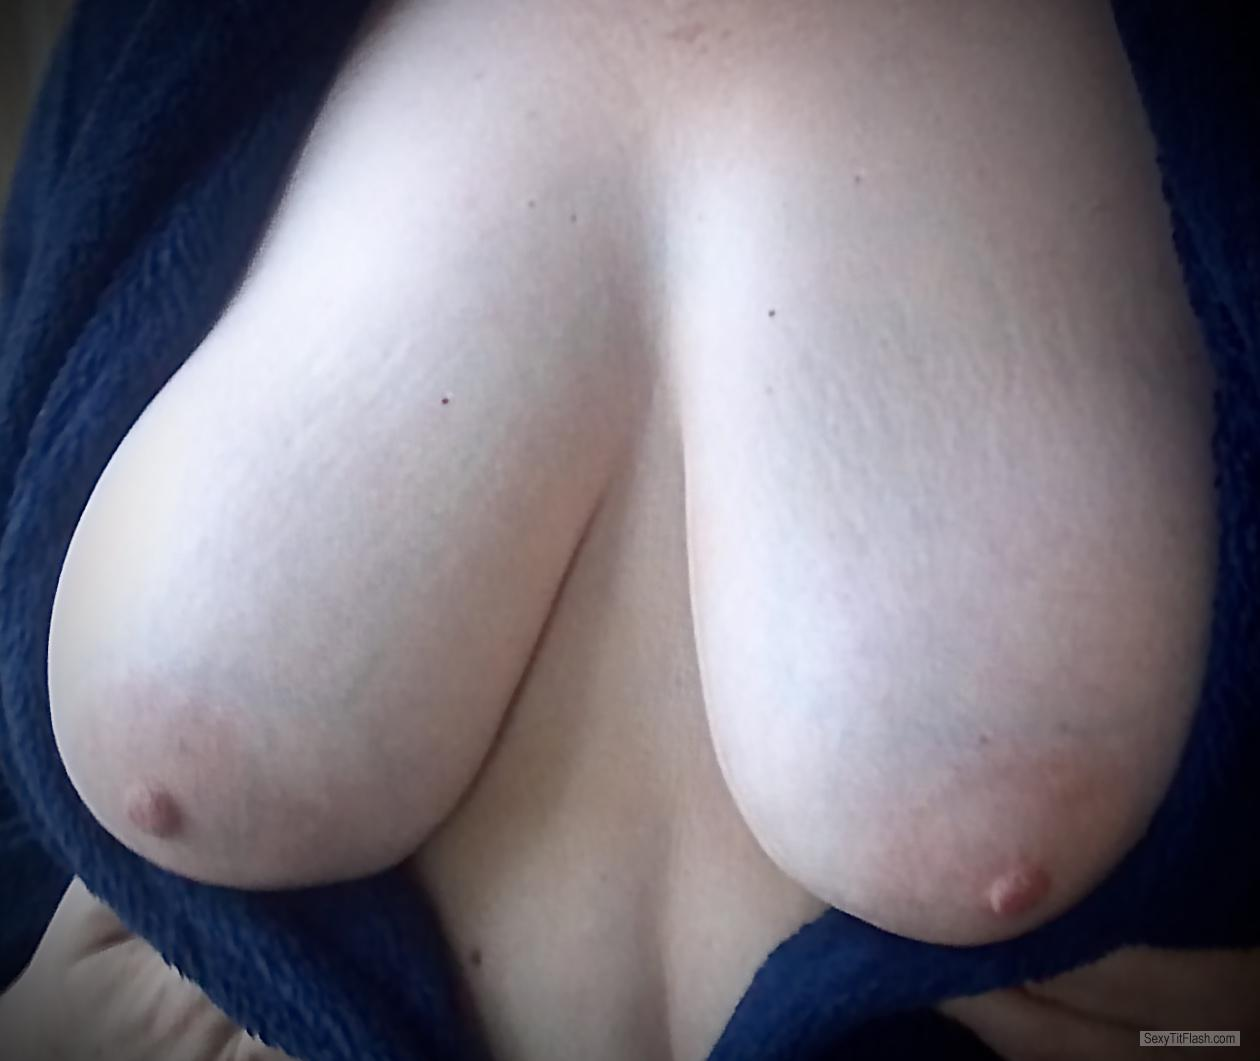 Tit Flash: Wife's Very Big Tits - My Wife's Big Beautiful , from United States